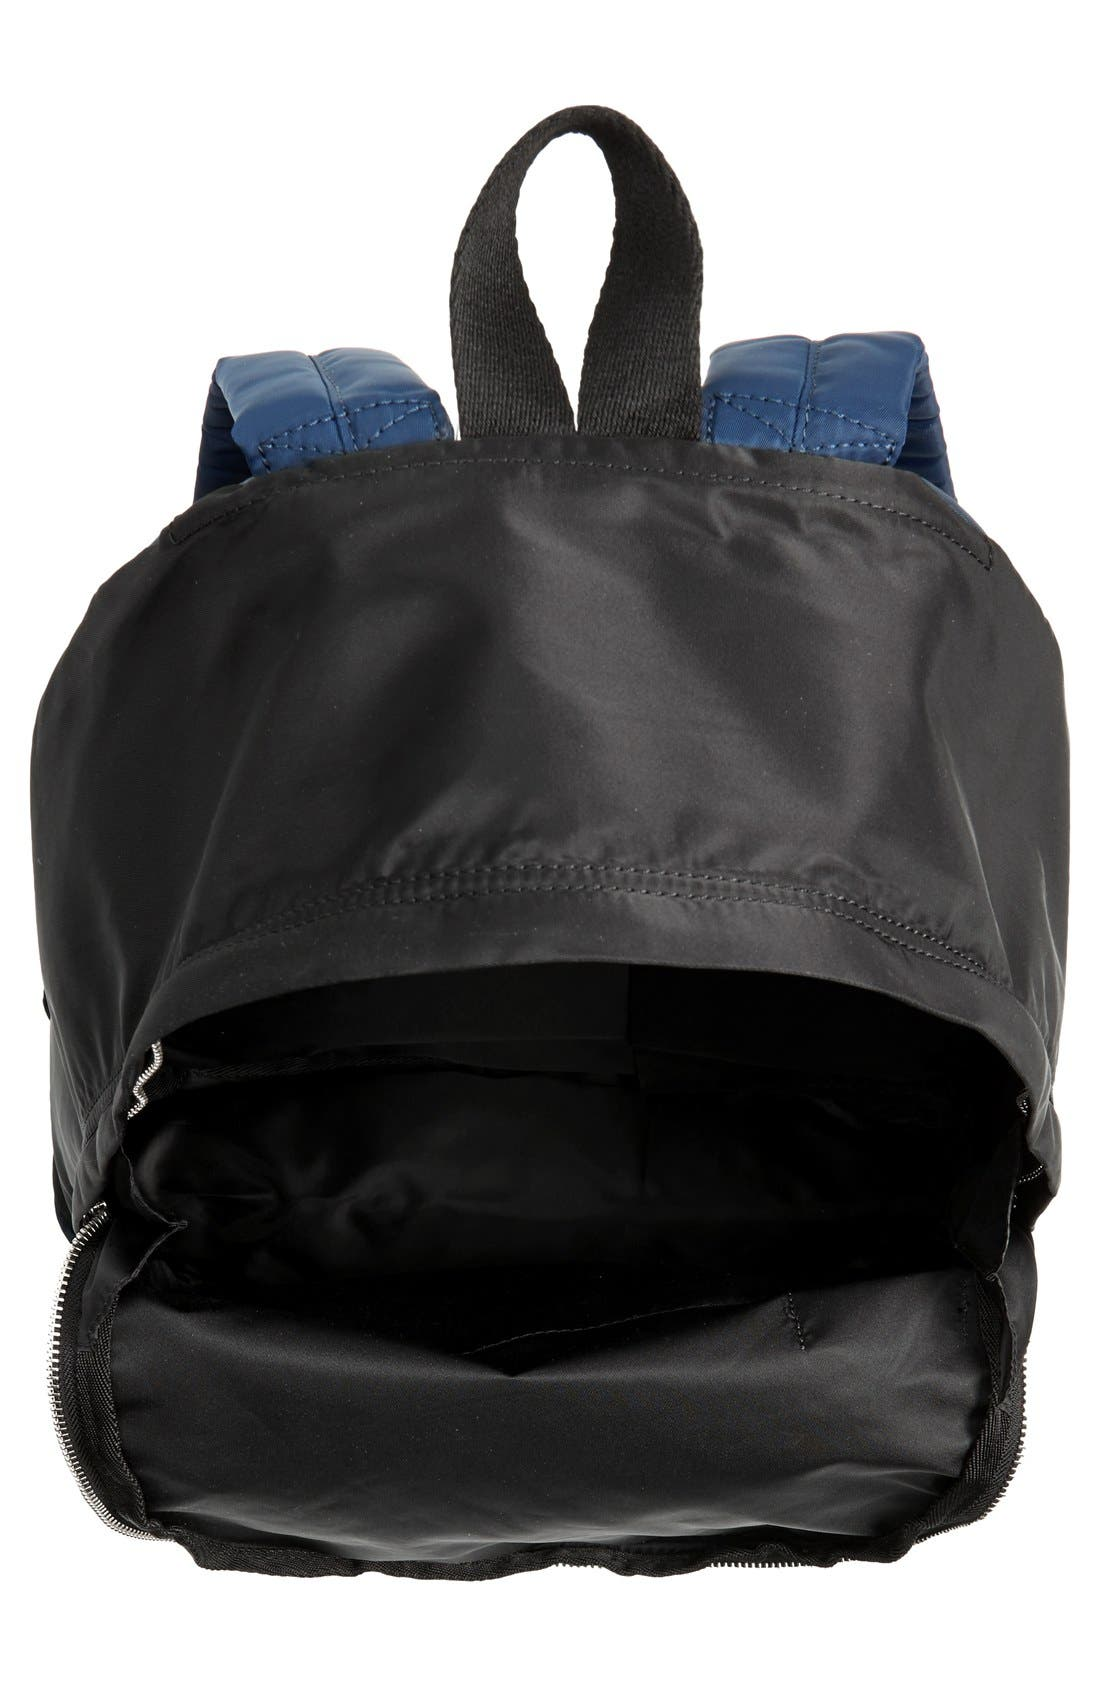 The Heights Adams Backpack,                             Alternate thumbnail 5, color,                             Black/ Navy